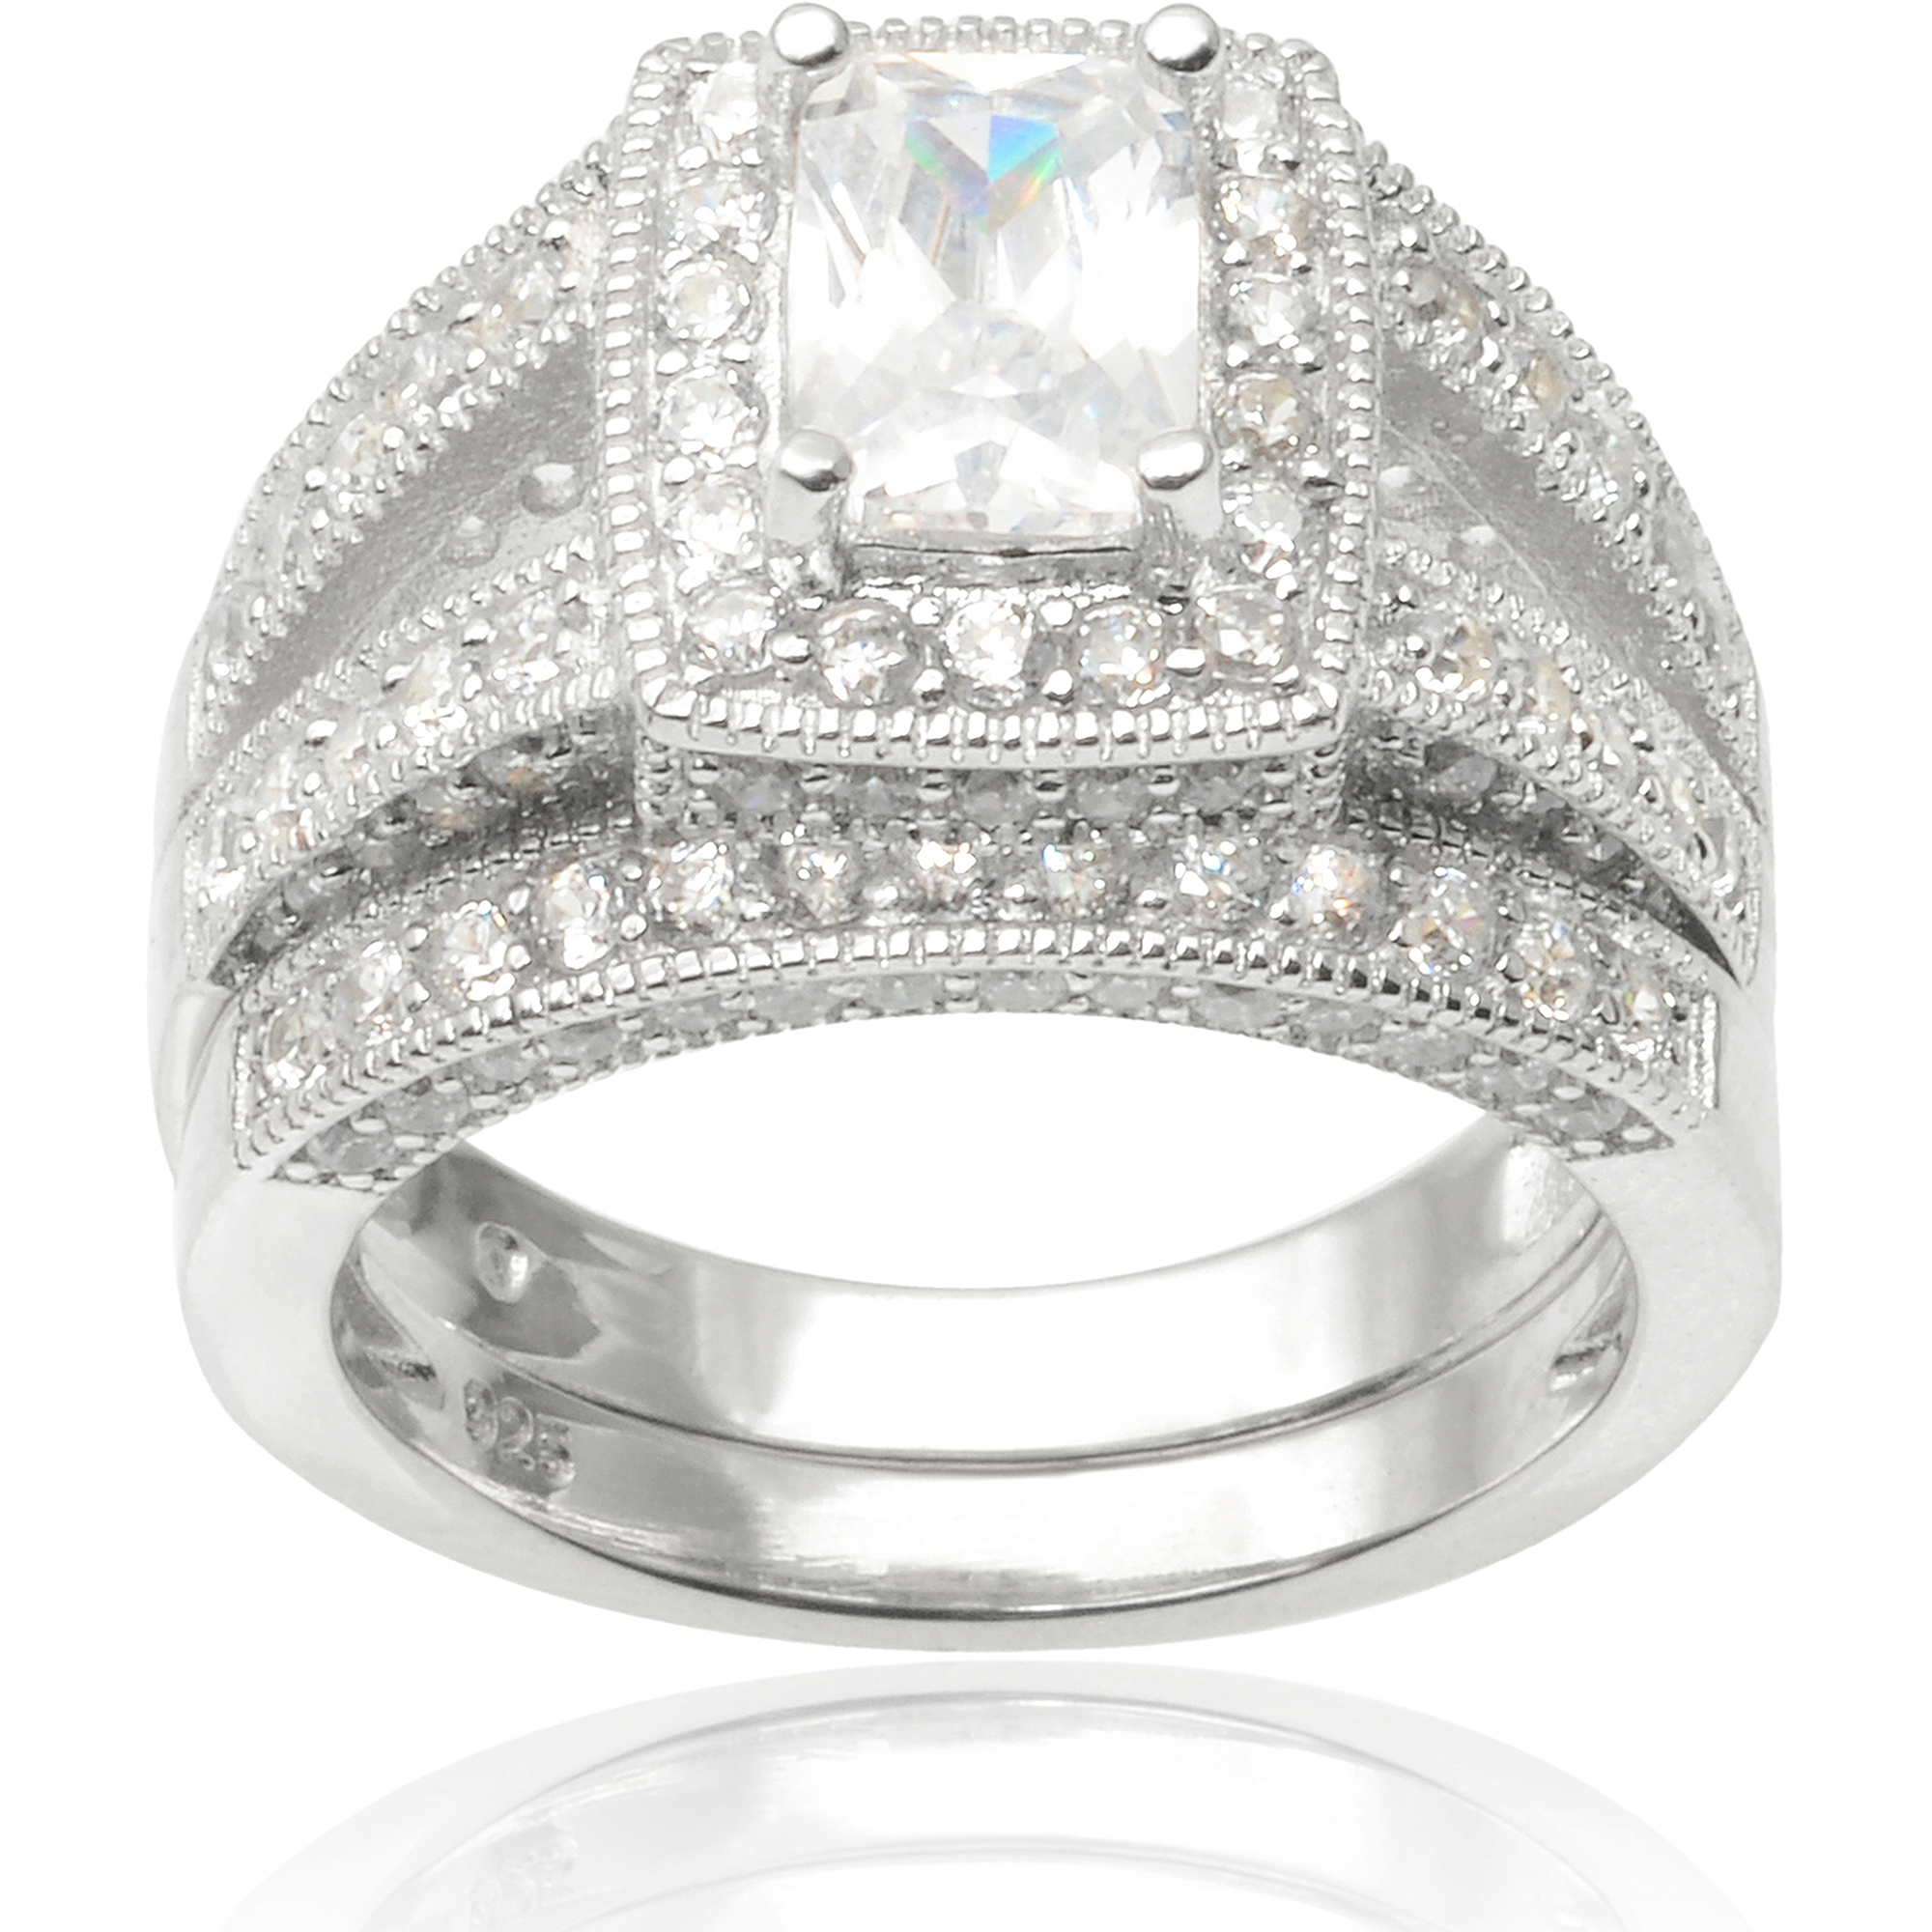 Alexandria Collection Sterling Silver 4-1/2 Carat T.G.W. Emerald Cubic Zirconia Bridal Ring Set